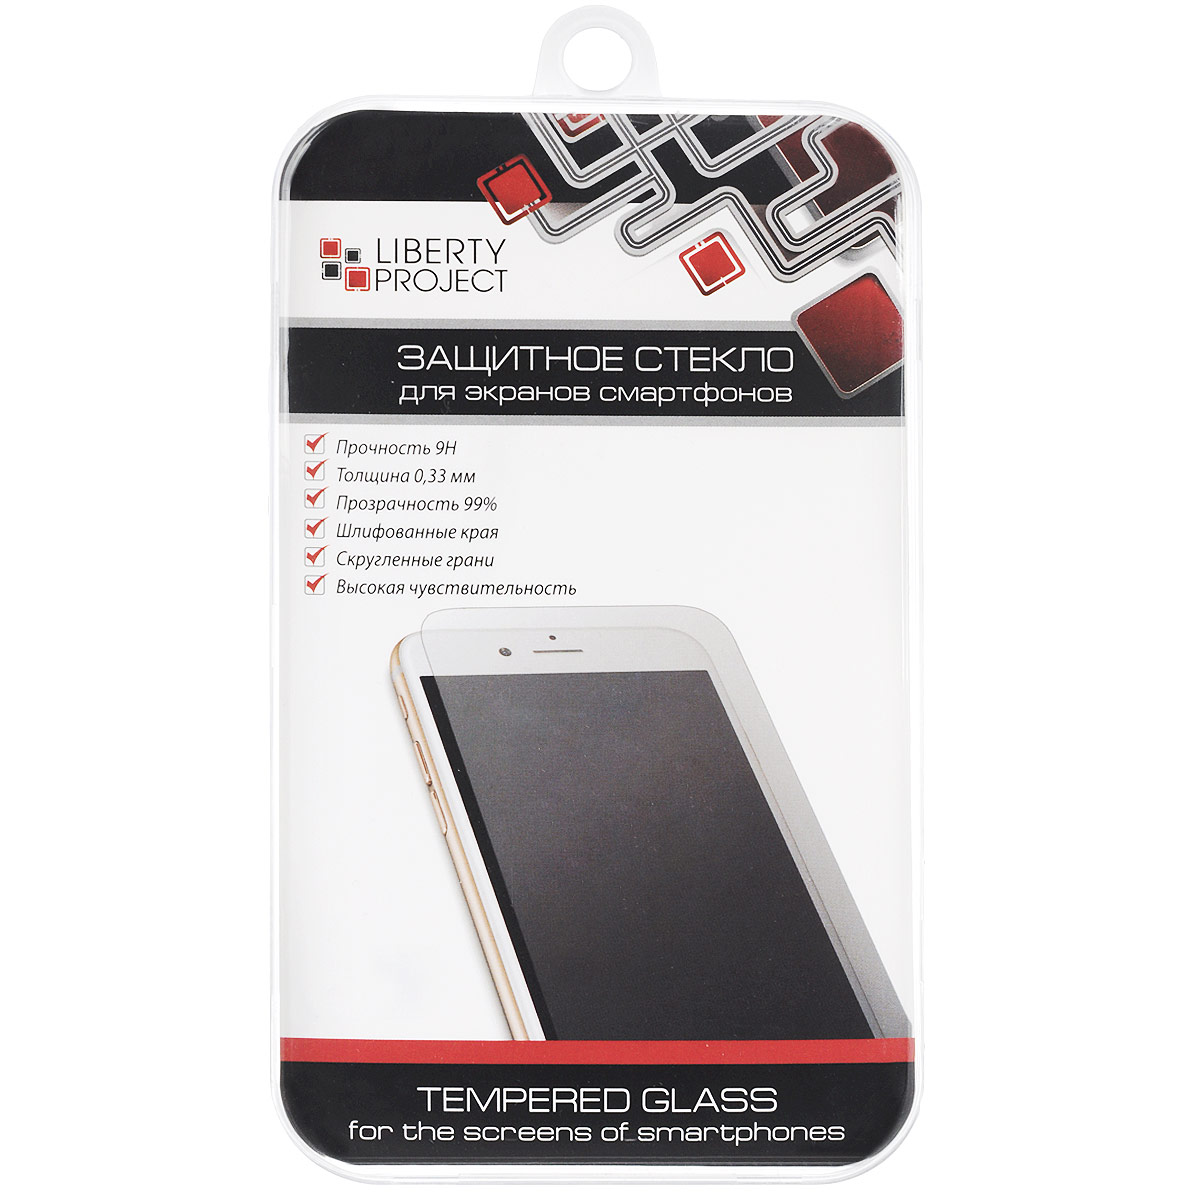 Liberty Project Tempered Glass защитное стекло для iPhone 5/5s/5c/SE, Clear (0.33 мм)